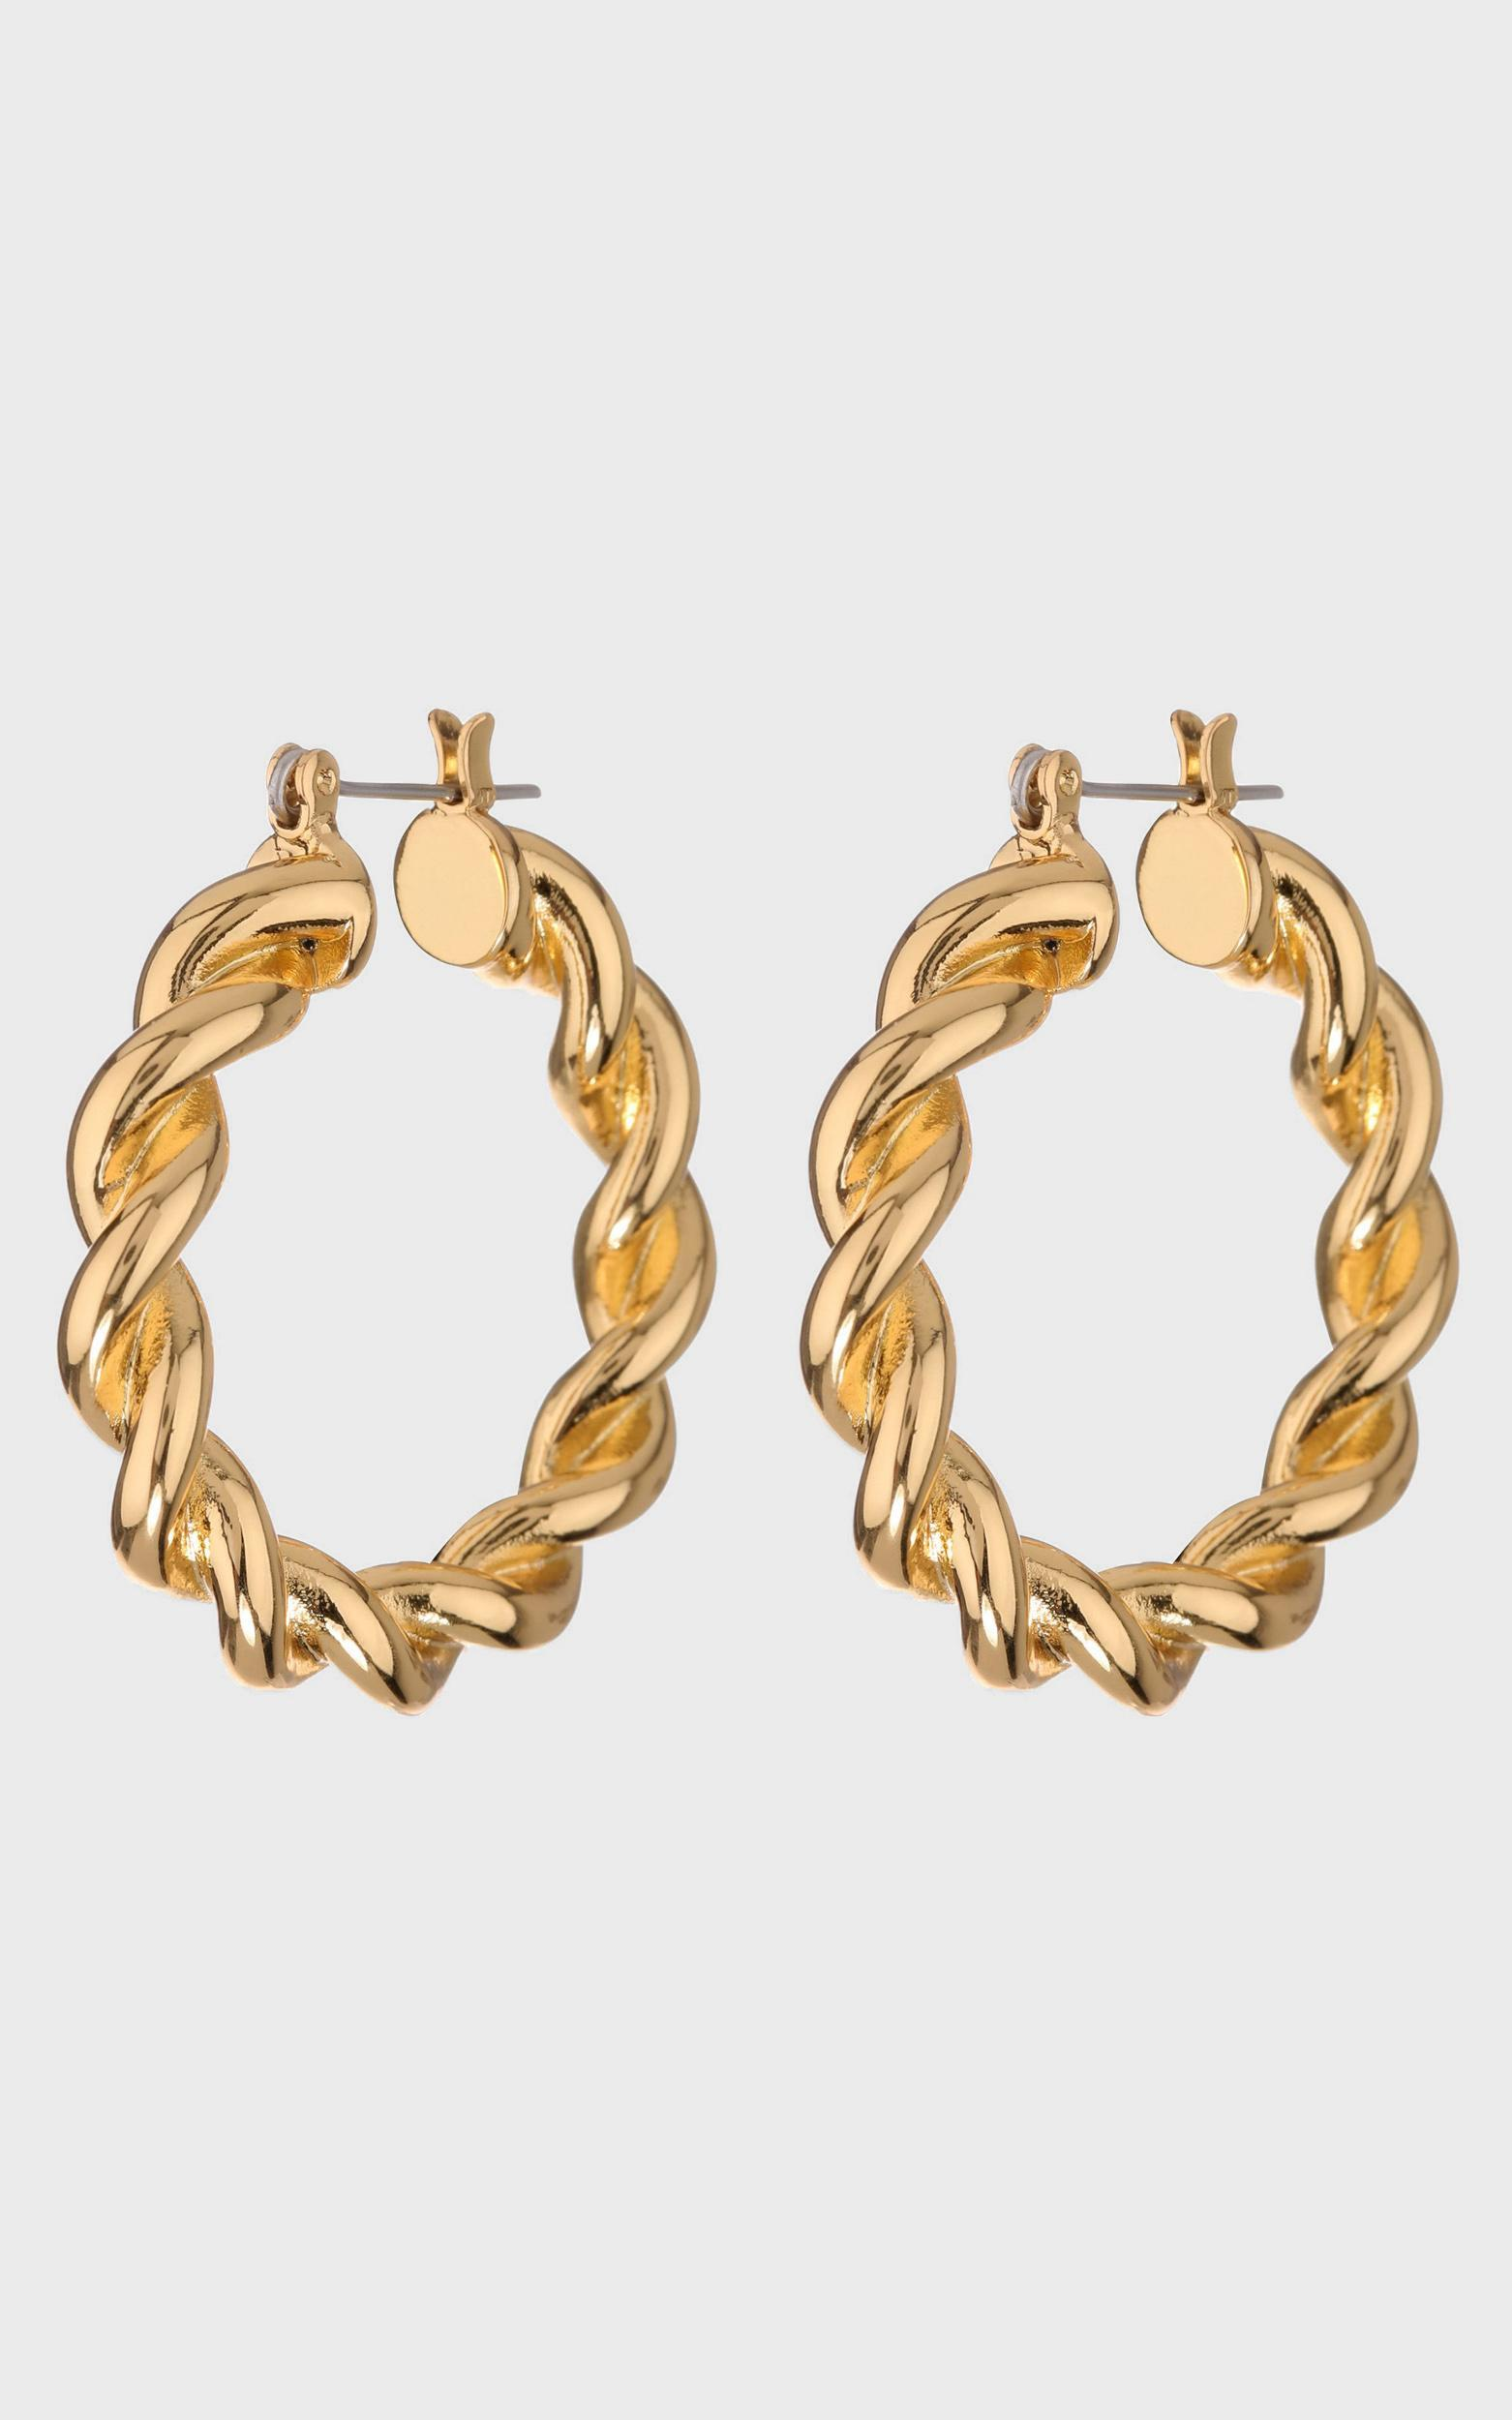 Luv Aj - St. Tropez Hoops in Gold, , hi-res image number null